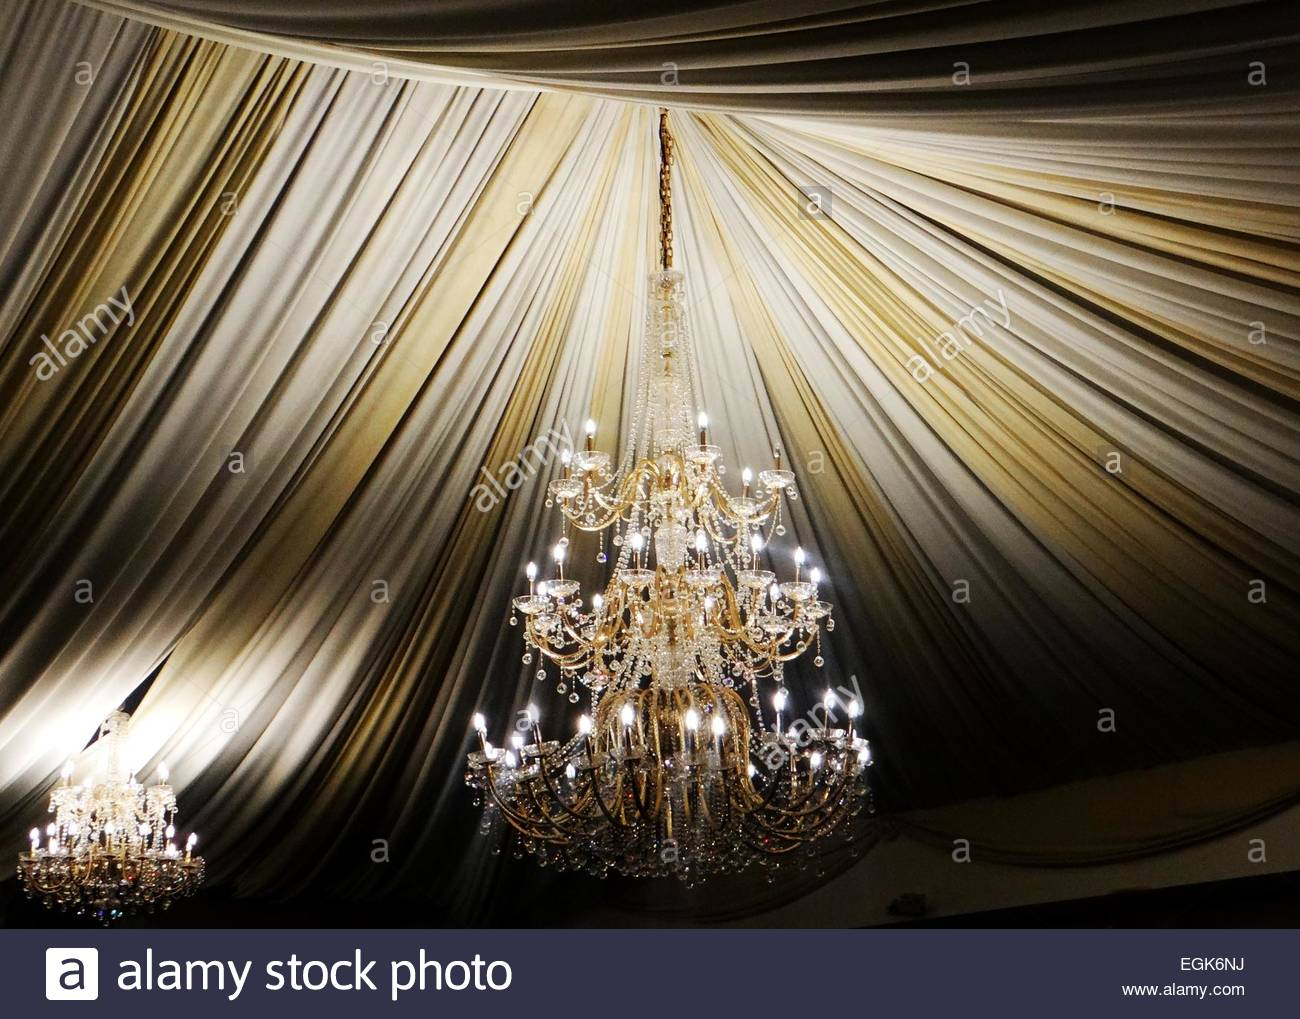 Ornate chandelier under ceiling decorated with hanging clothes stock ornate chandelier under ceiling decorated with hanging clothes aloadofball Choice Image